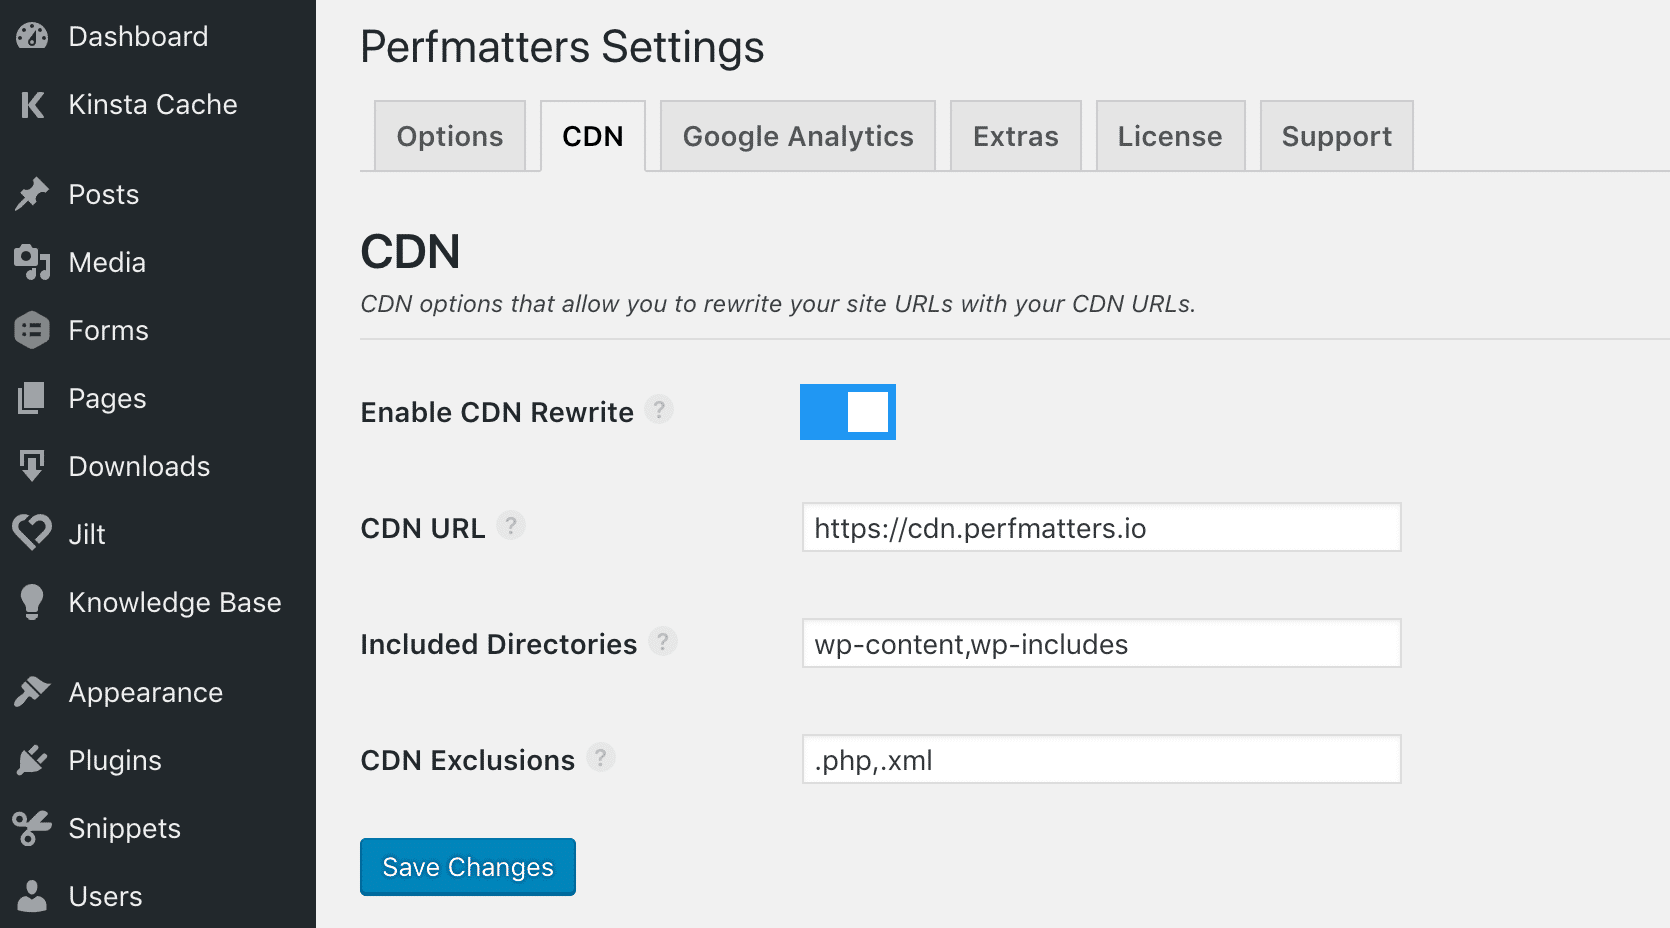 Abilitare il CDN in WordPress con Perfmatters